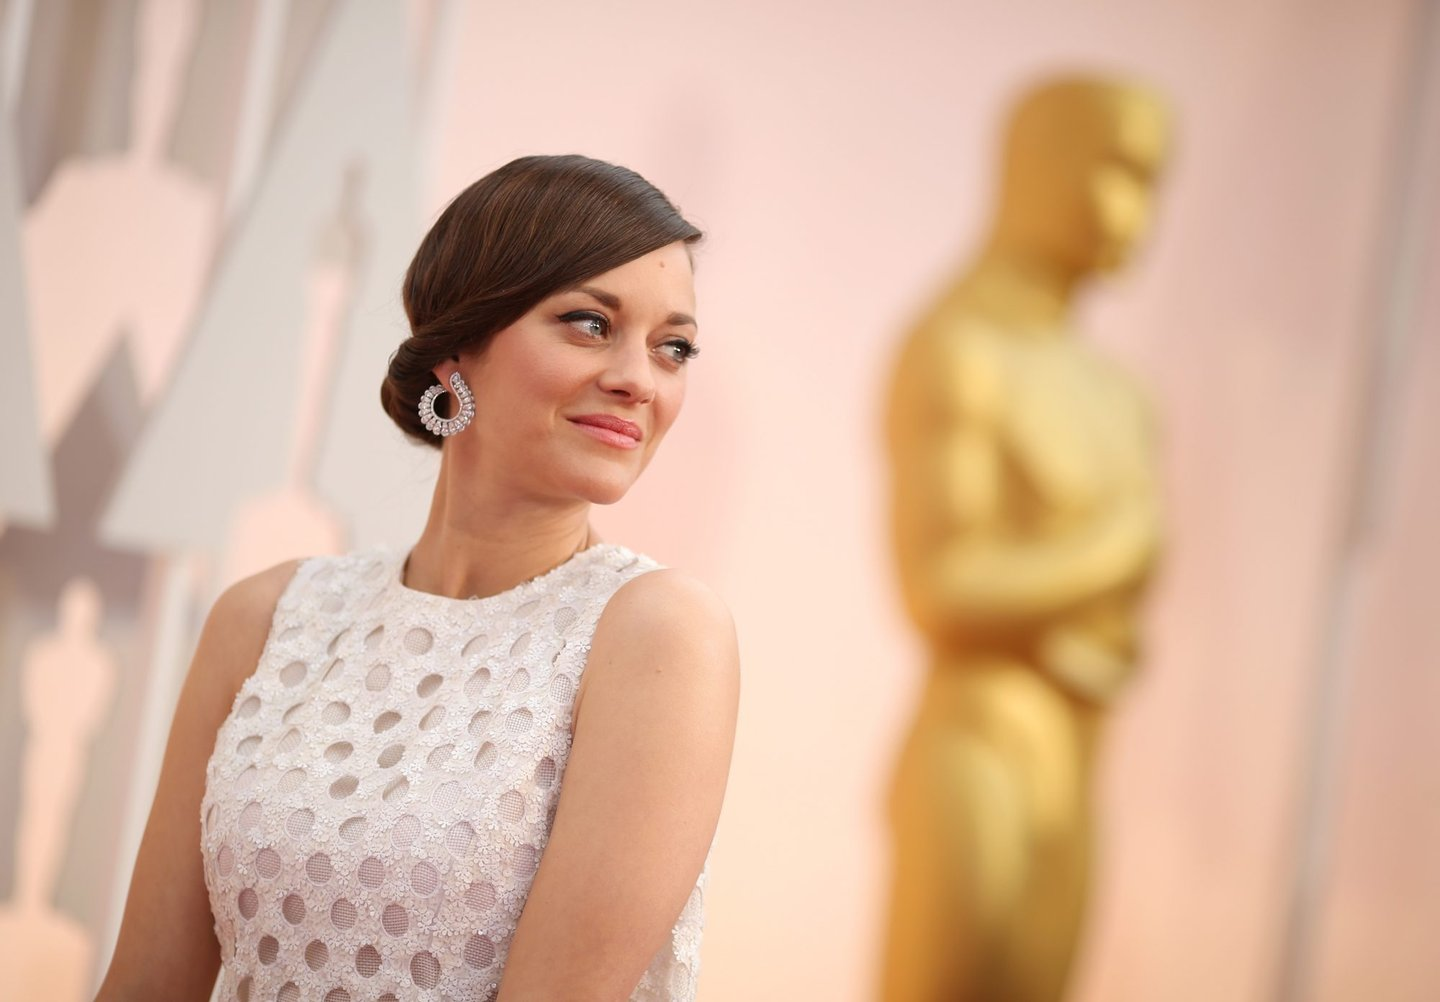 HOLLYWOOD, CA - FEBRUARY 22: Actress Marion Cotillard attends the 87th Annual Academy Awards at Hollywood & Highland Center on February 22, 2015 in Hollywood, California. (Photo by Christopher Polk/Getty Images)